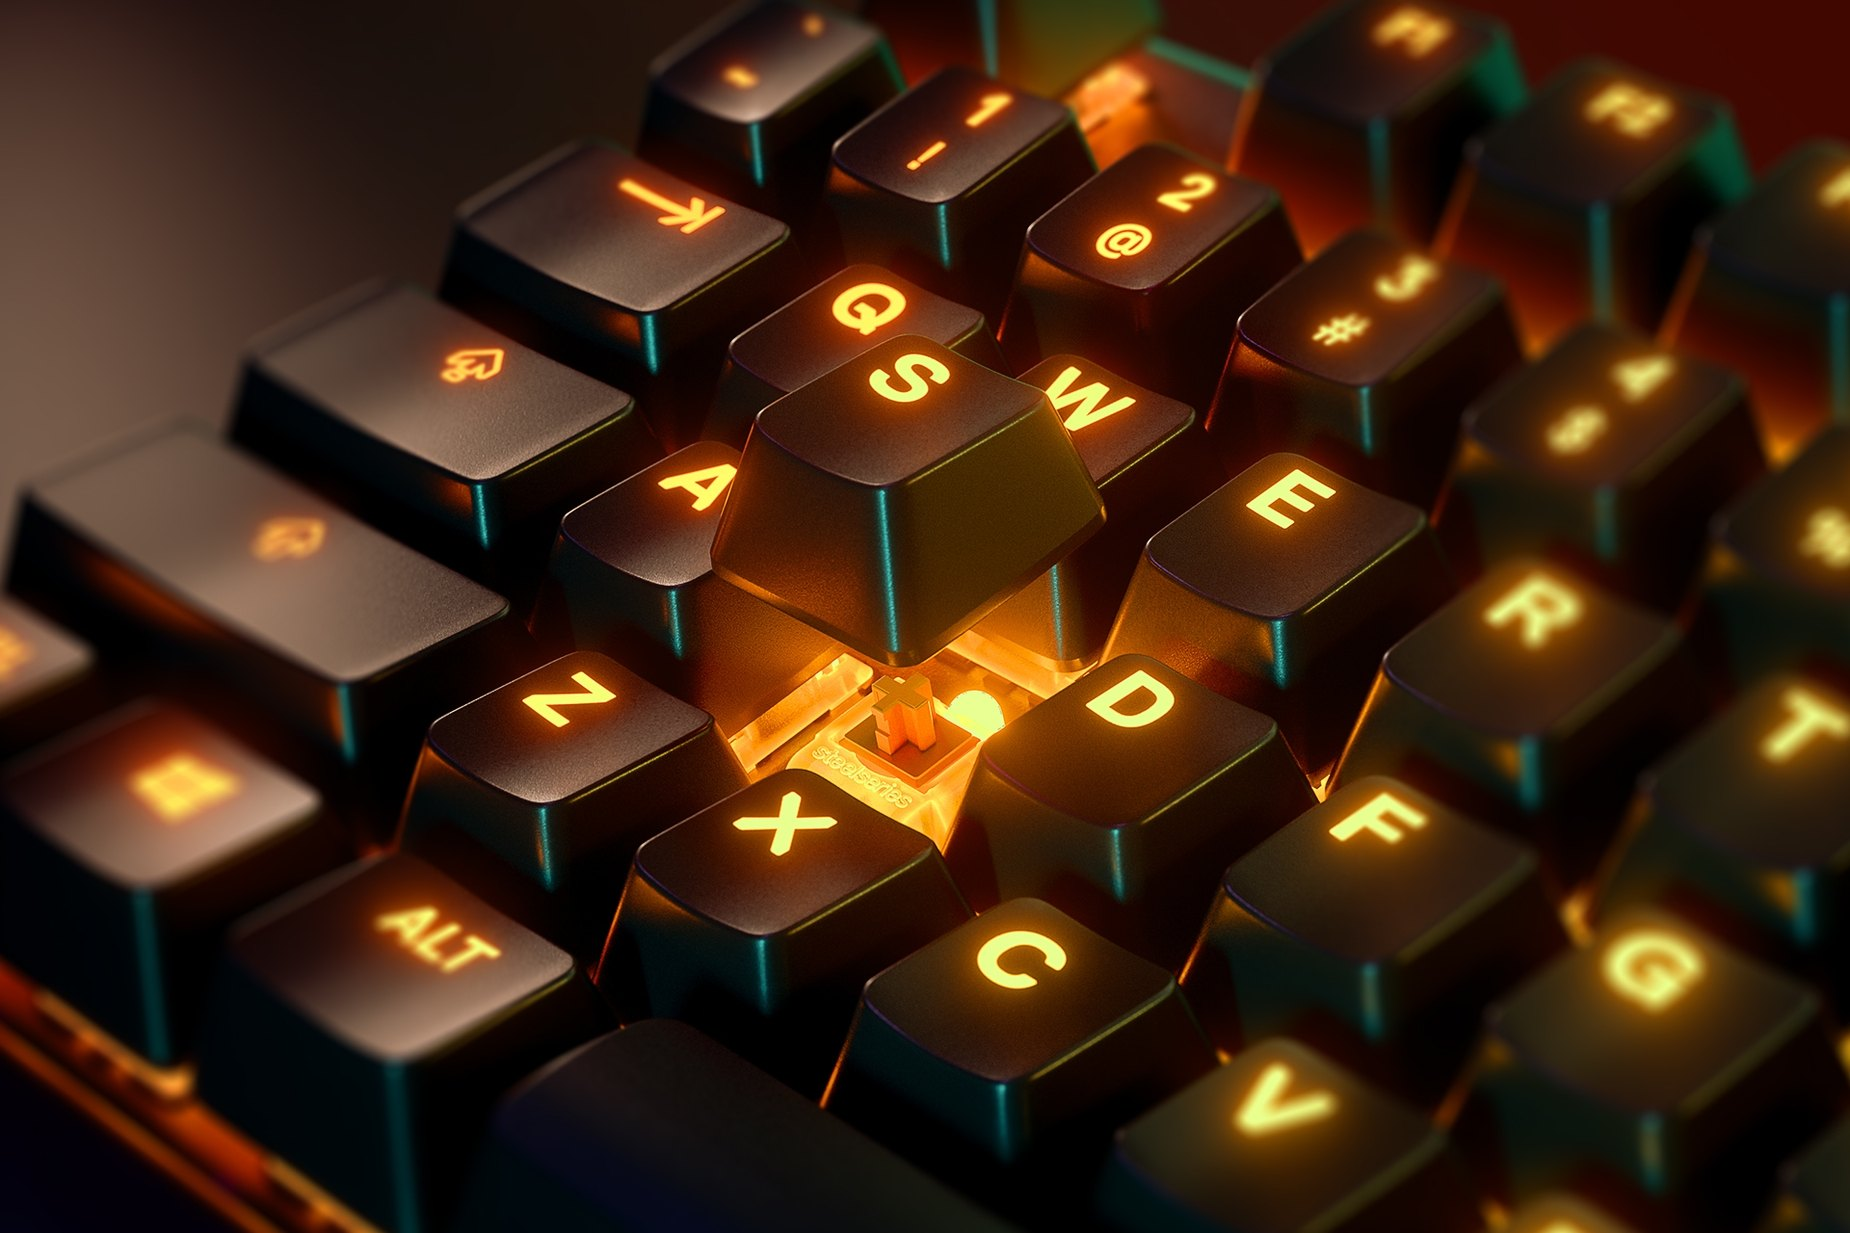 Zoomed in view of a single key on the Nordic-Apex 7 (Brown Switch) gaming keyboard, the key is raised up to show the SteelSeries QX2 Mechanical RGB Switch underneath